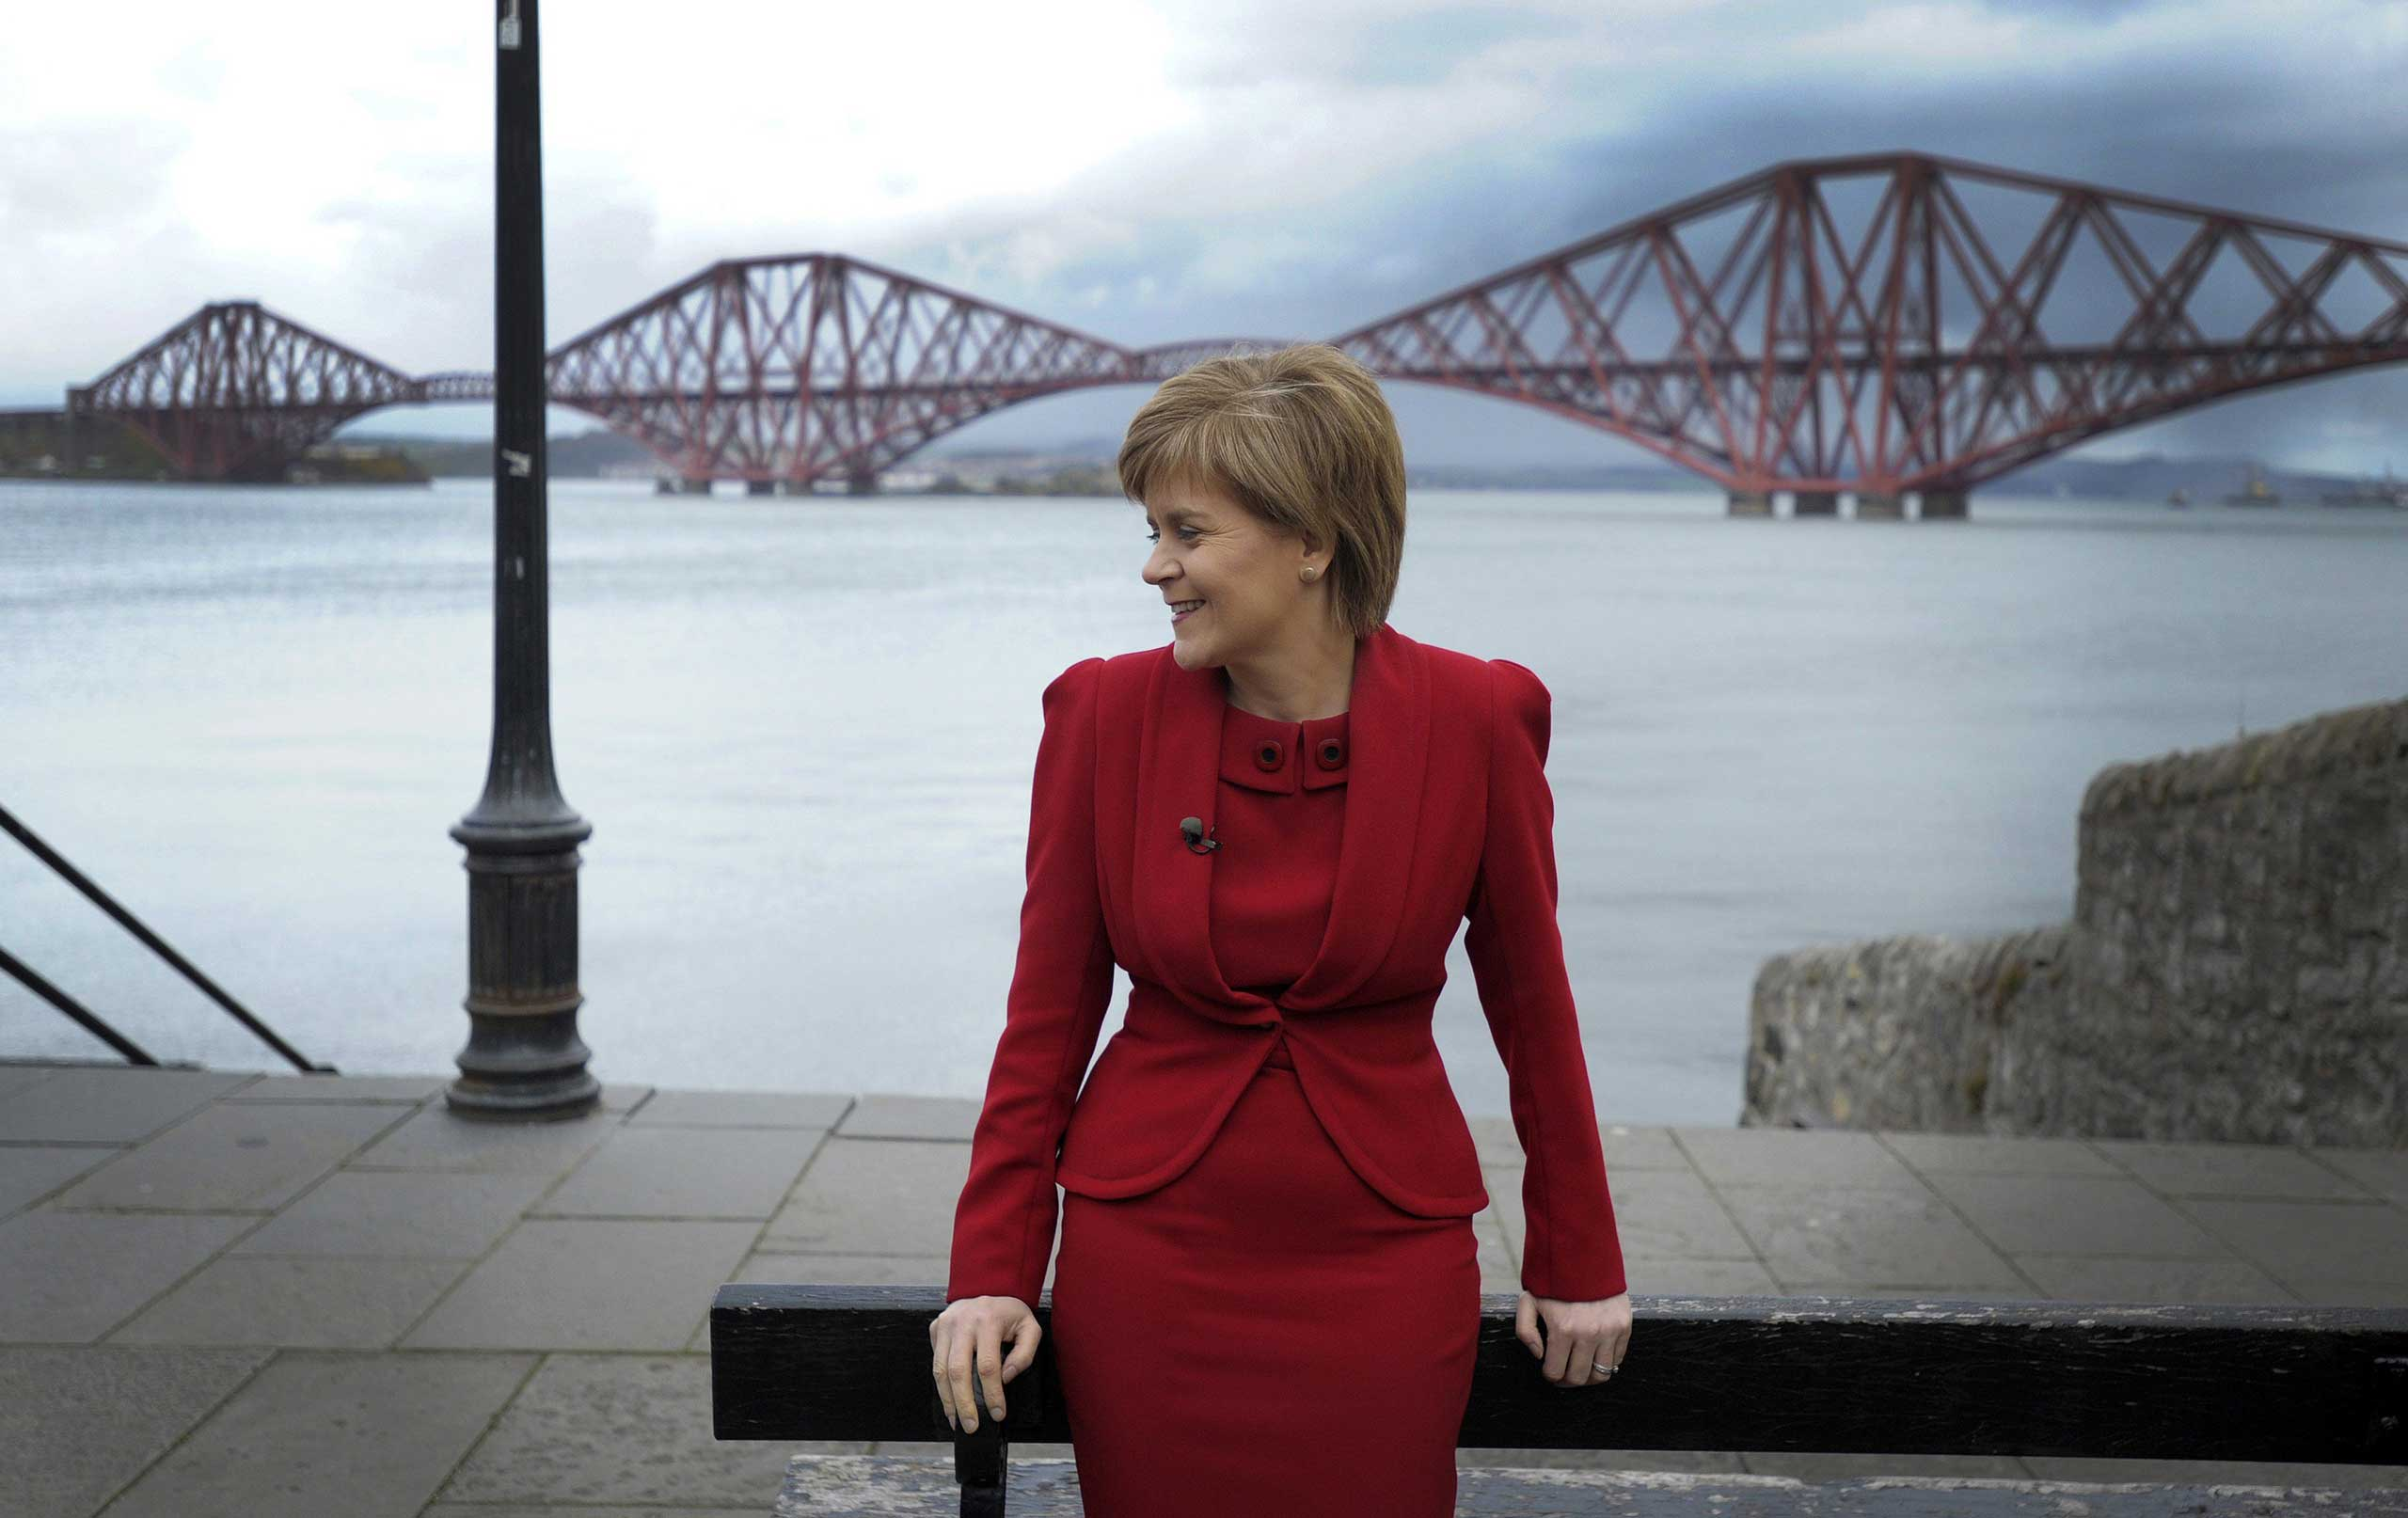 First Minister of Scotland and leader of the Scottish National Party Nicola Sturgeon campaigns in South Queensferry on the outskirts of Edinburgh on April 28, 2015.